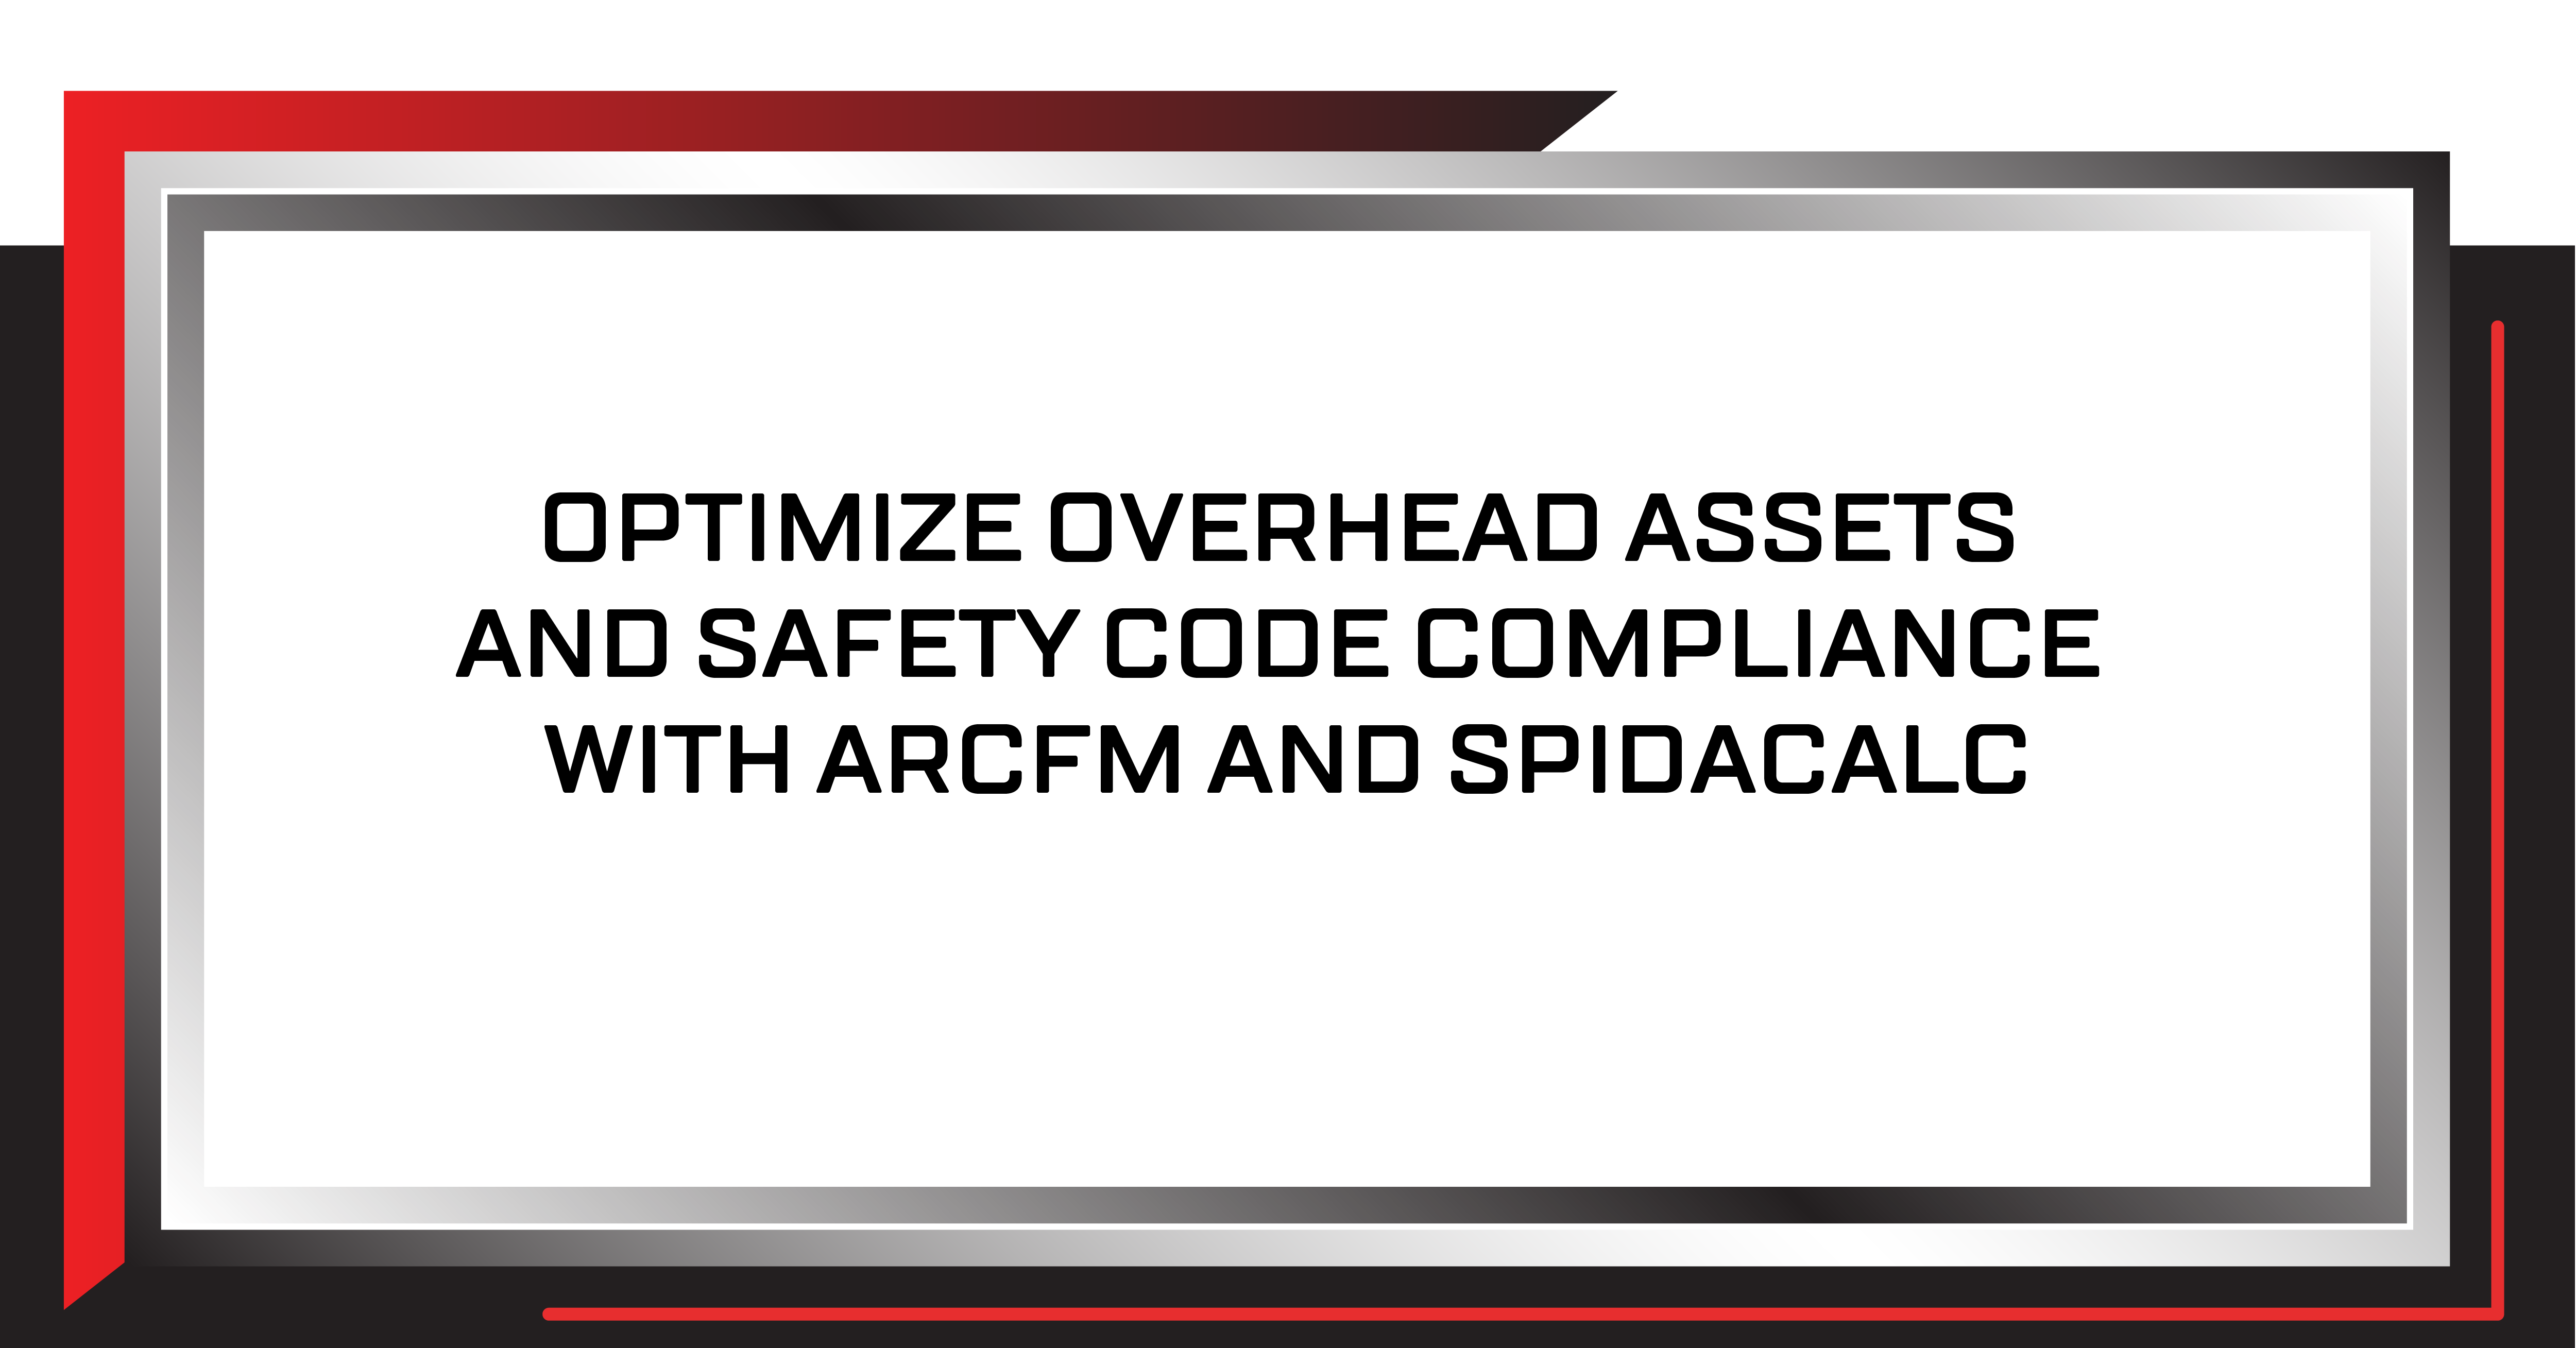 Optimize Overhead Assets and Safety Code Compliance with ArcFM and SPIDA®calc